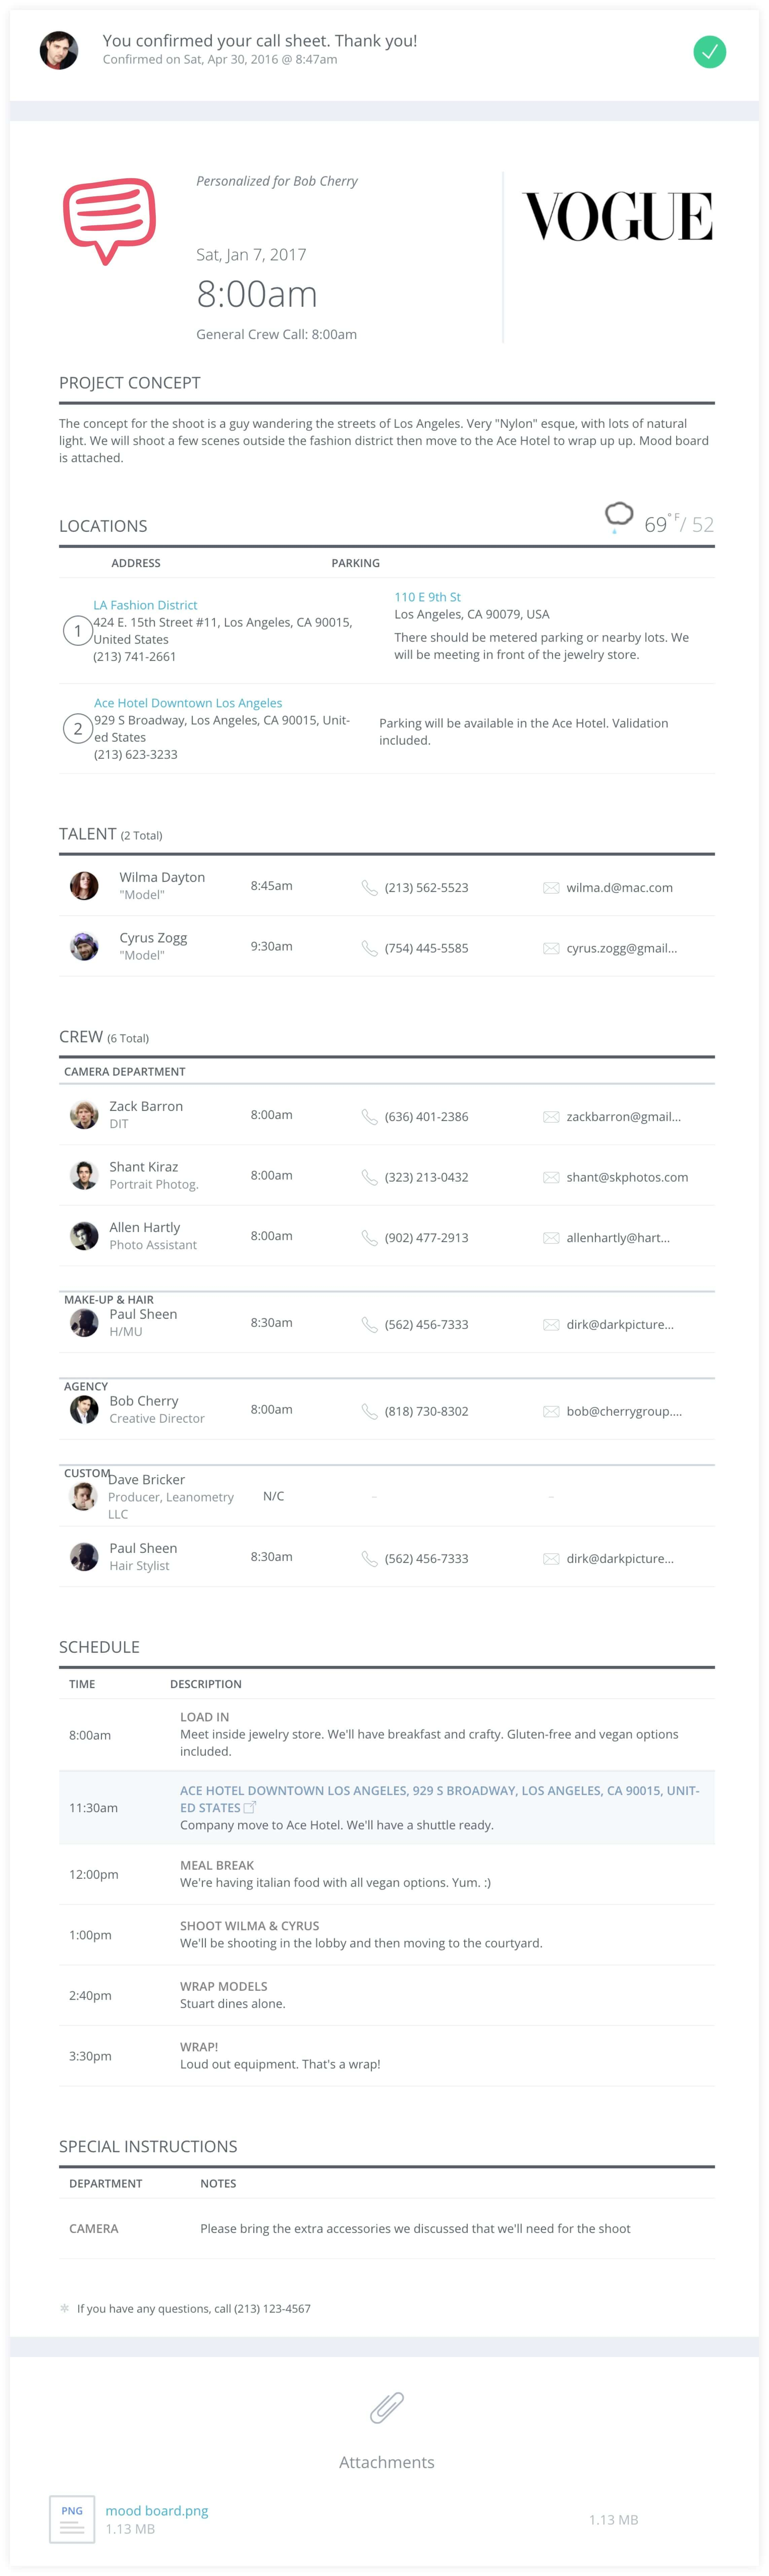 Photoshoot Call Sheet Template - StudioBinder - Desktop